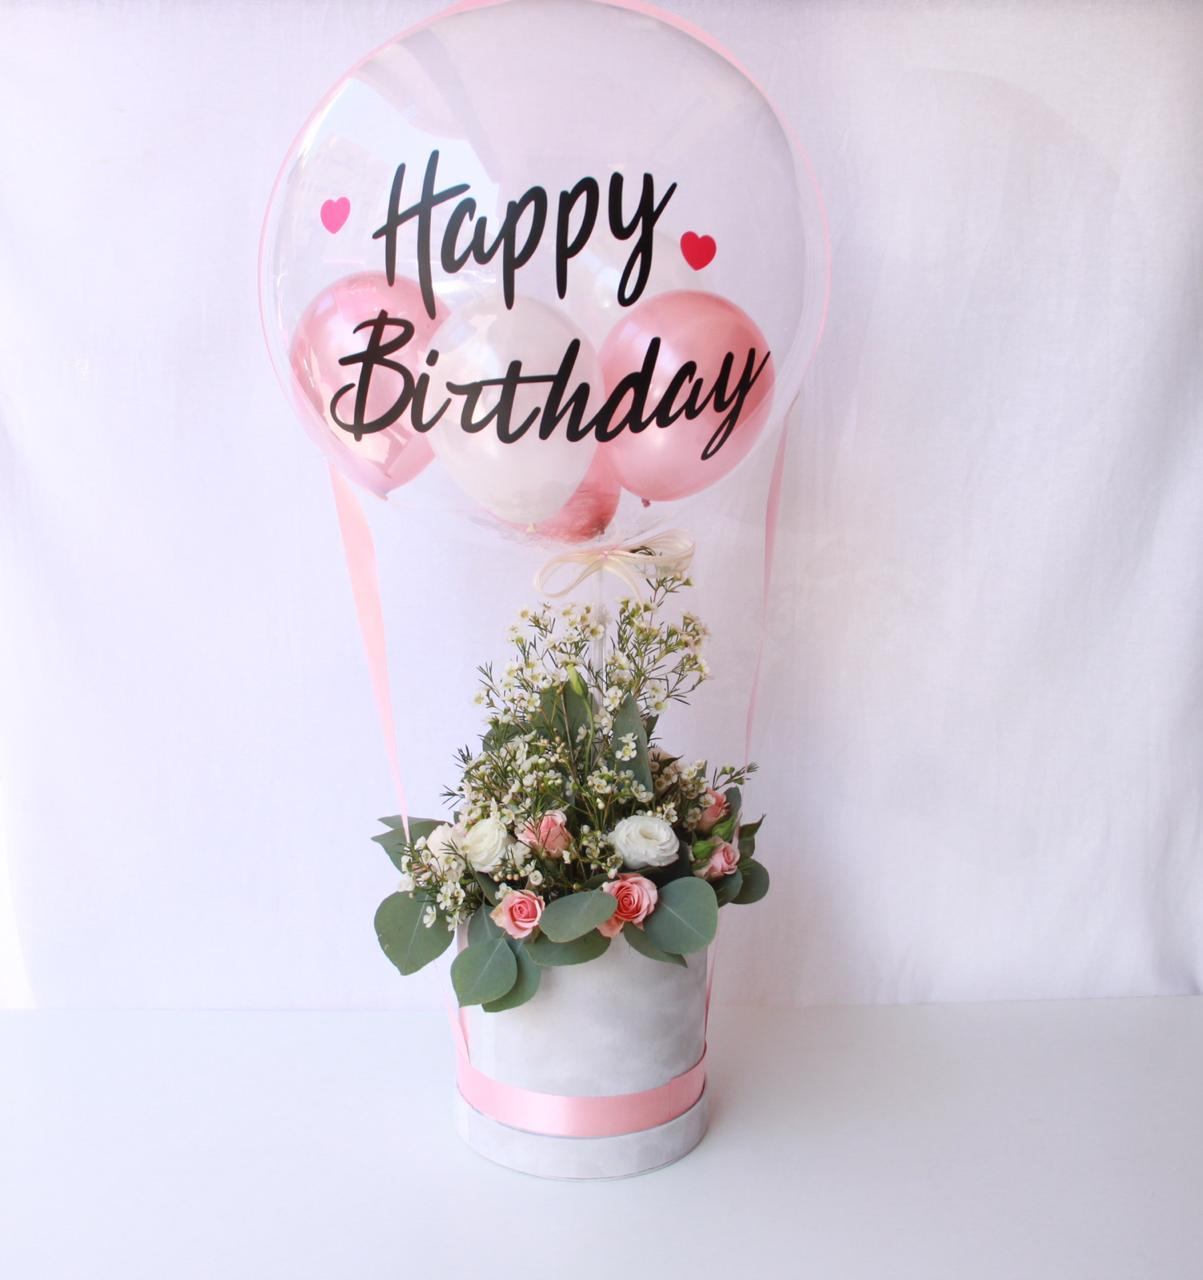 Happy Birthday Hot Air Balloon Flower Box Tabrah Flowers Gifts Trading